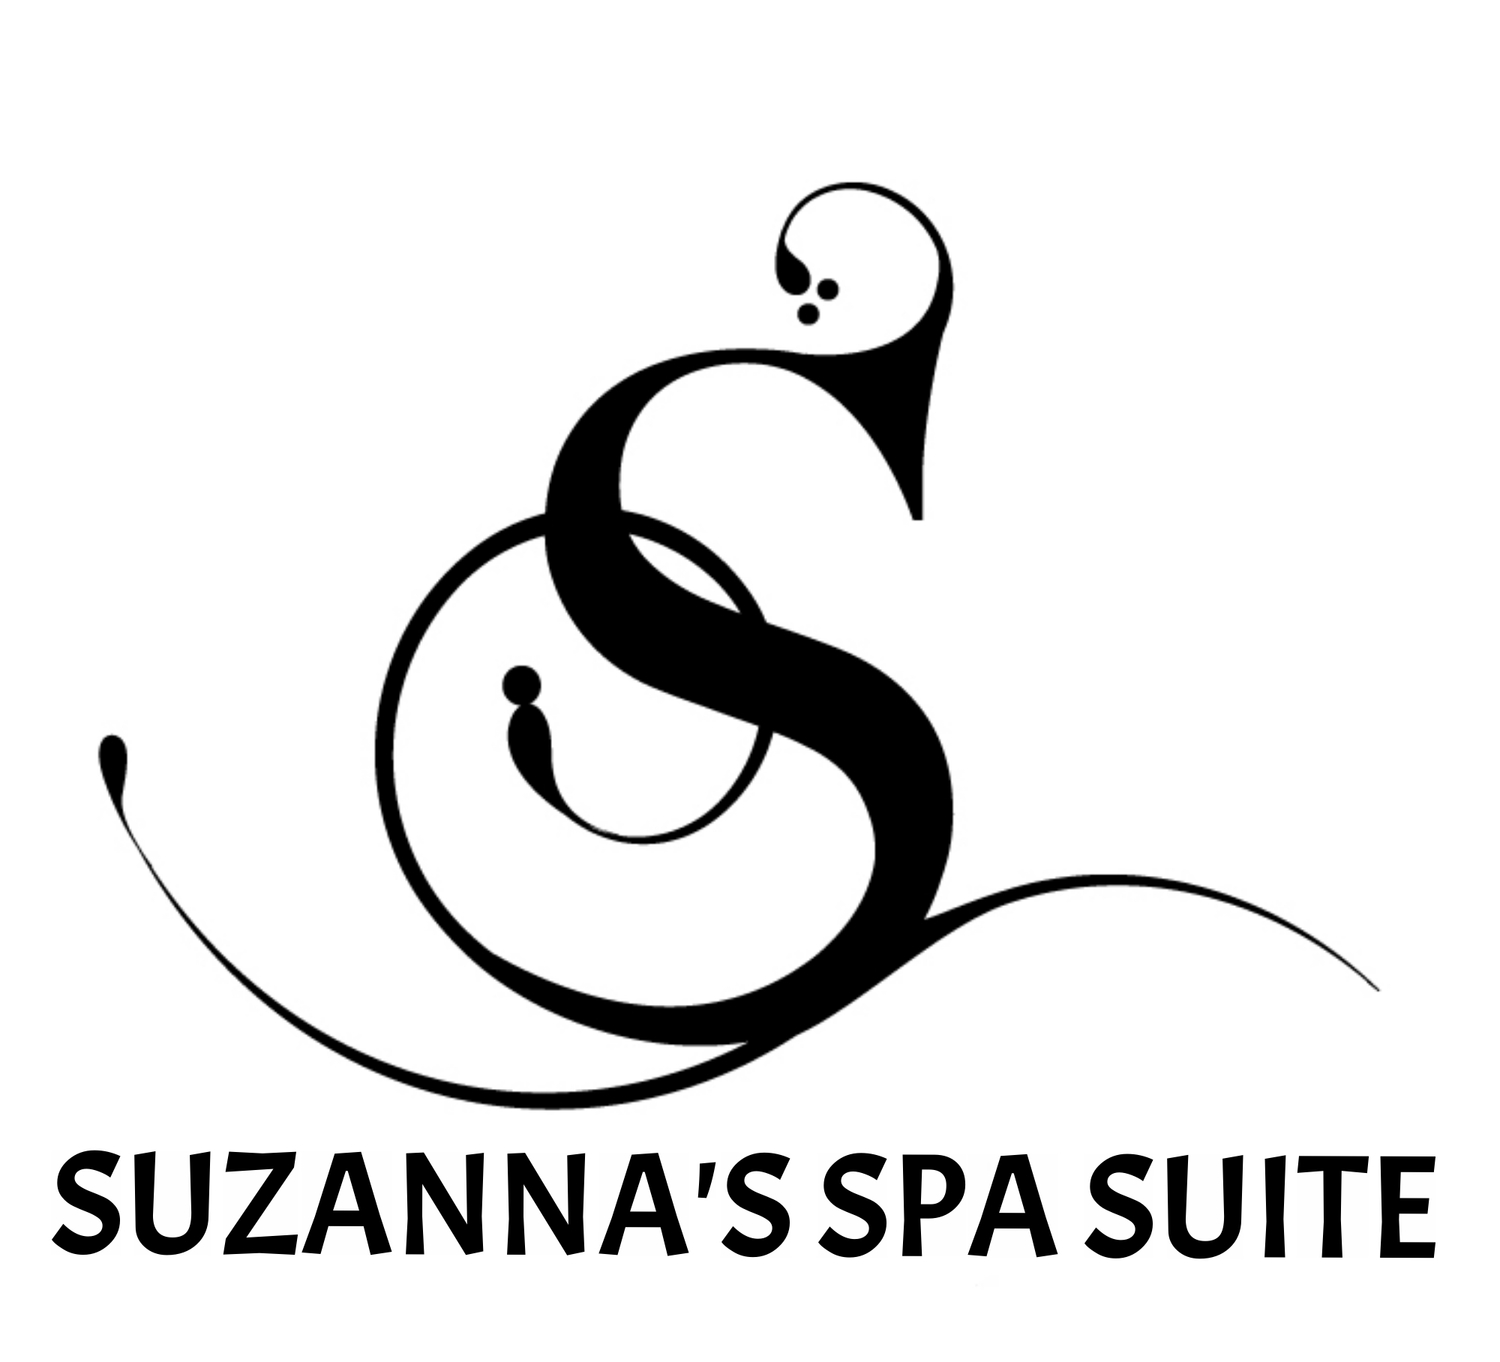 Suzanna's Spa suite